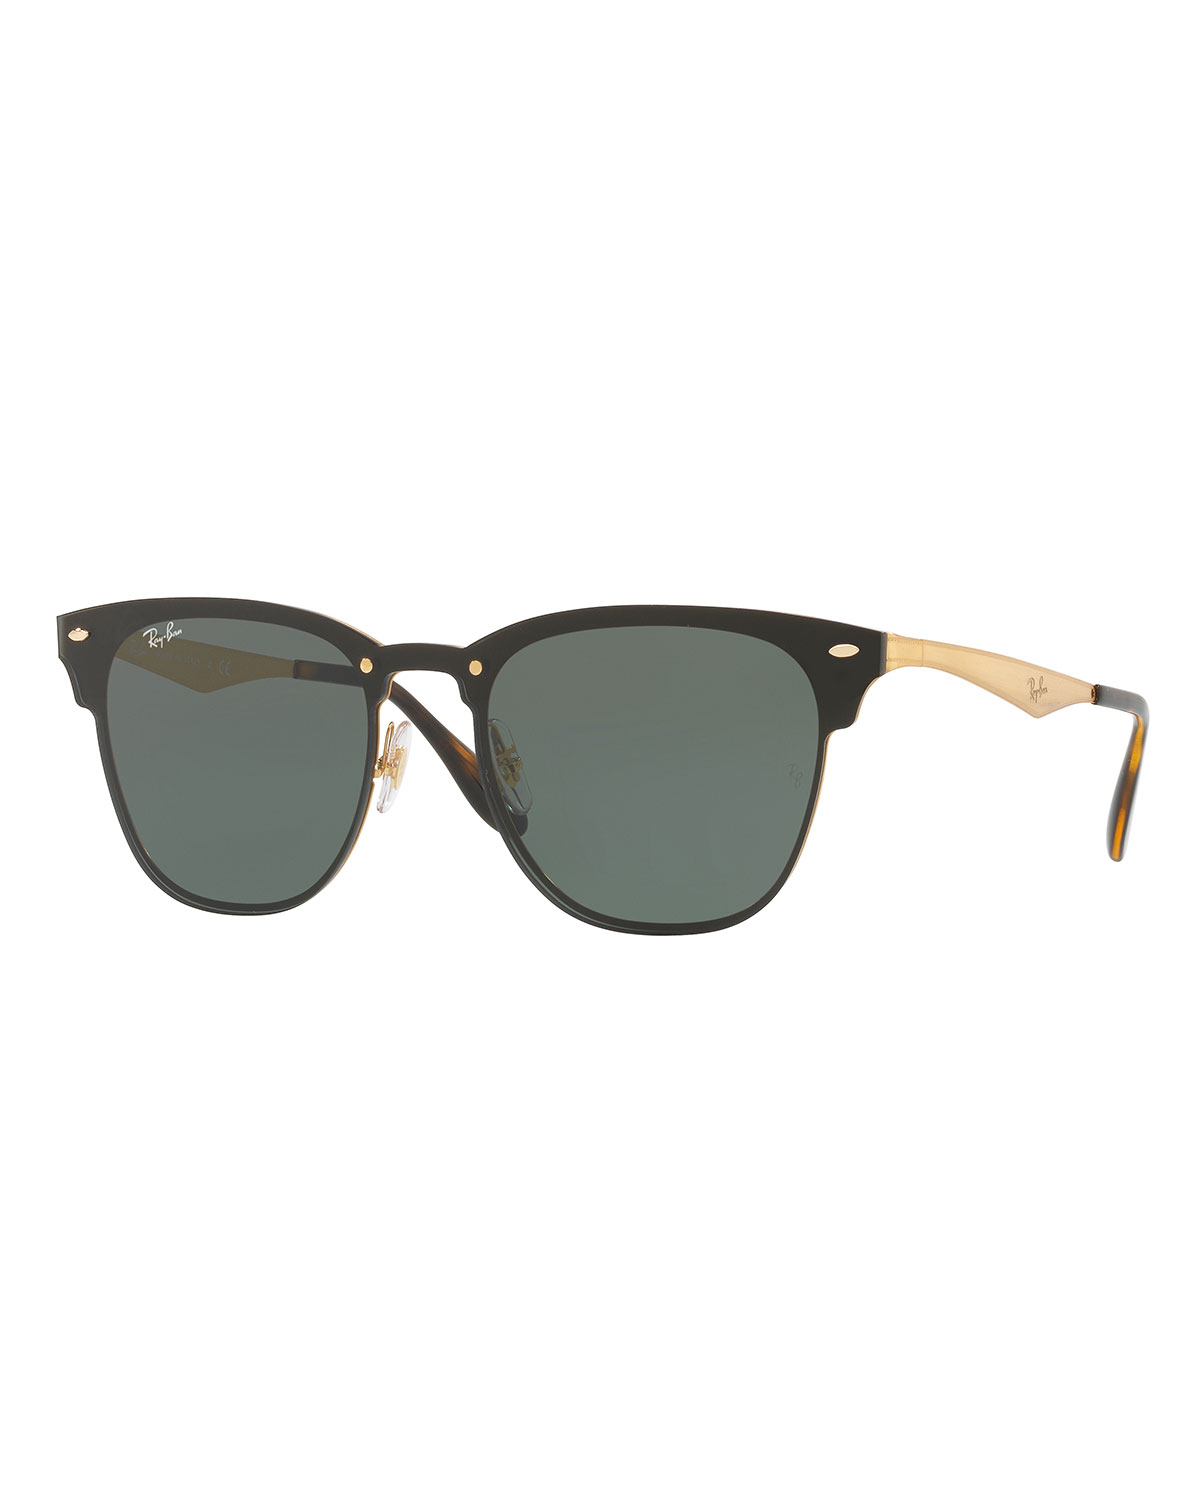 f73d91ae98 Black Gold Sunglasses